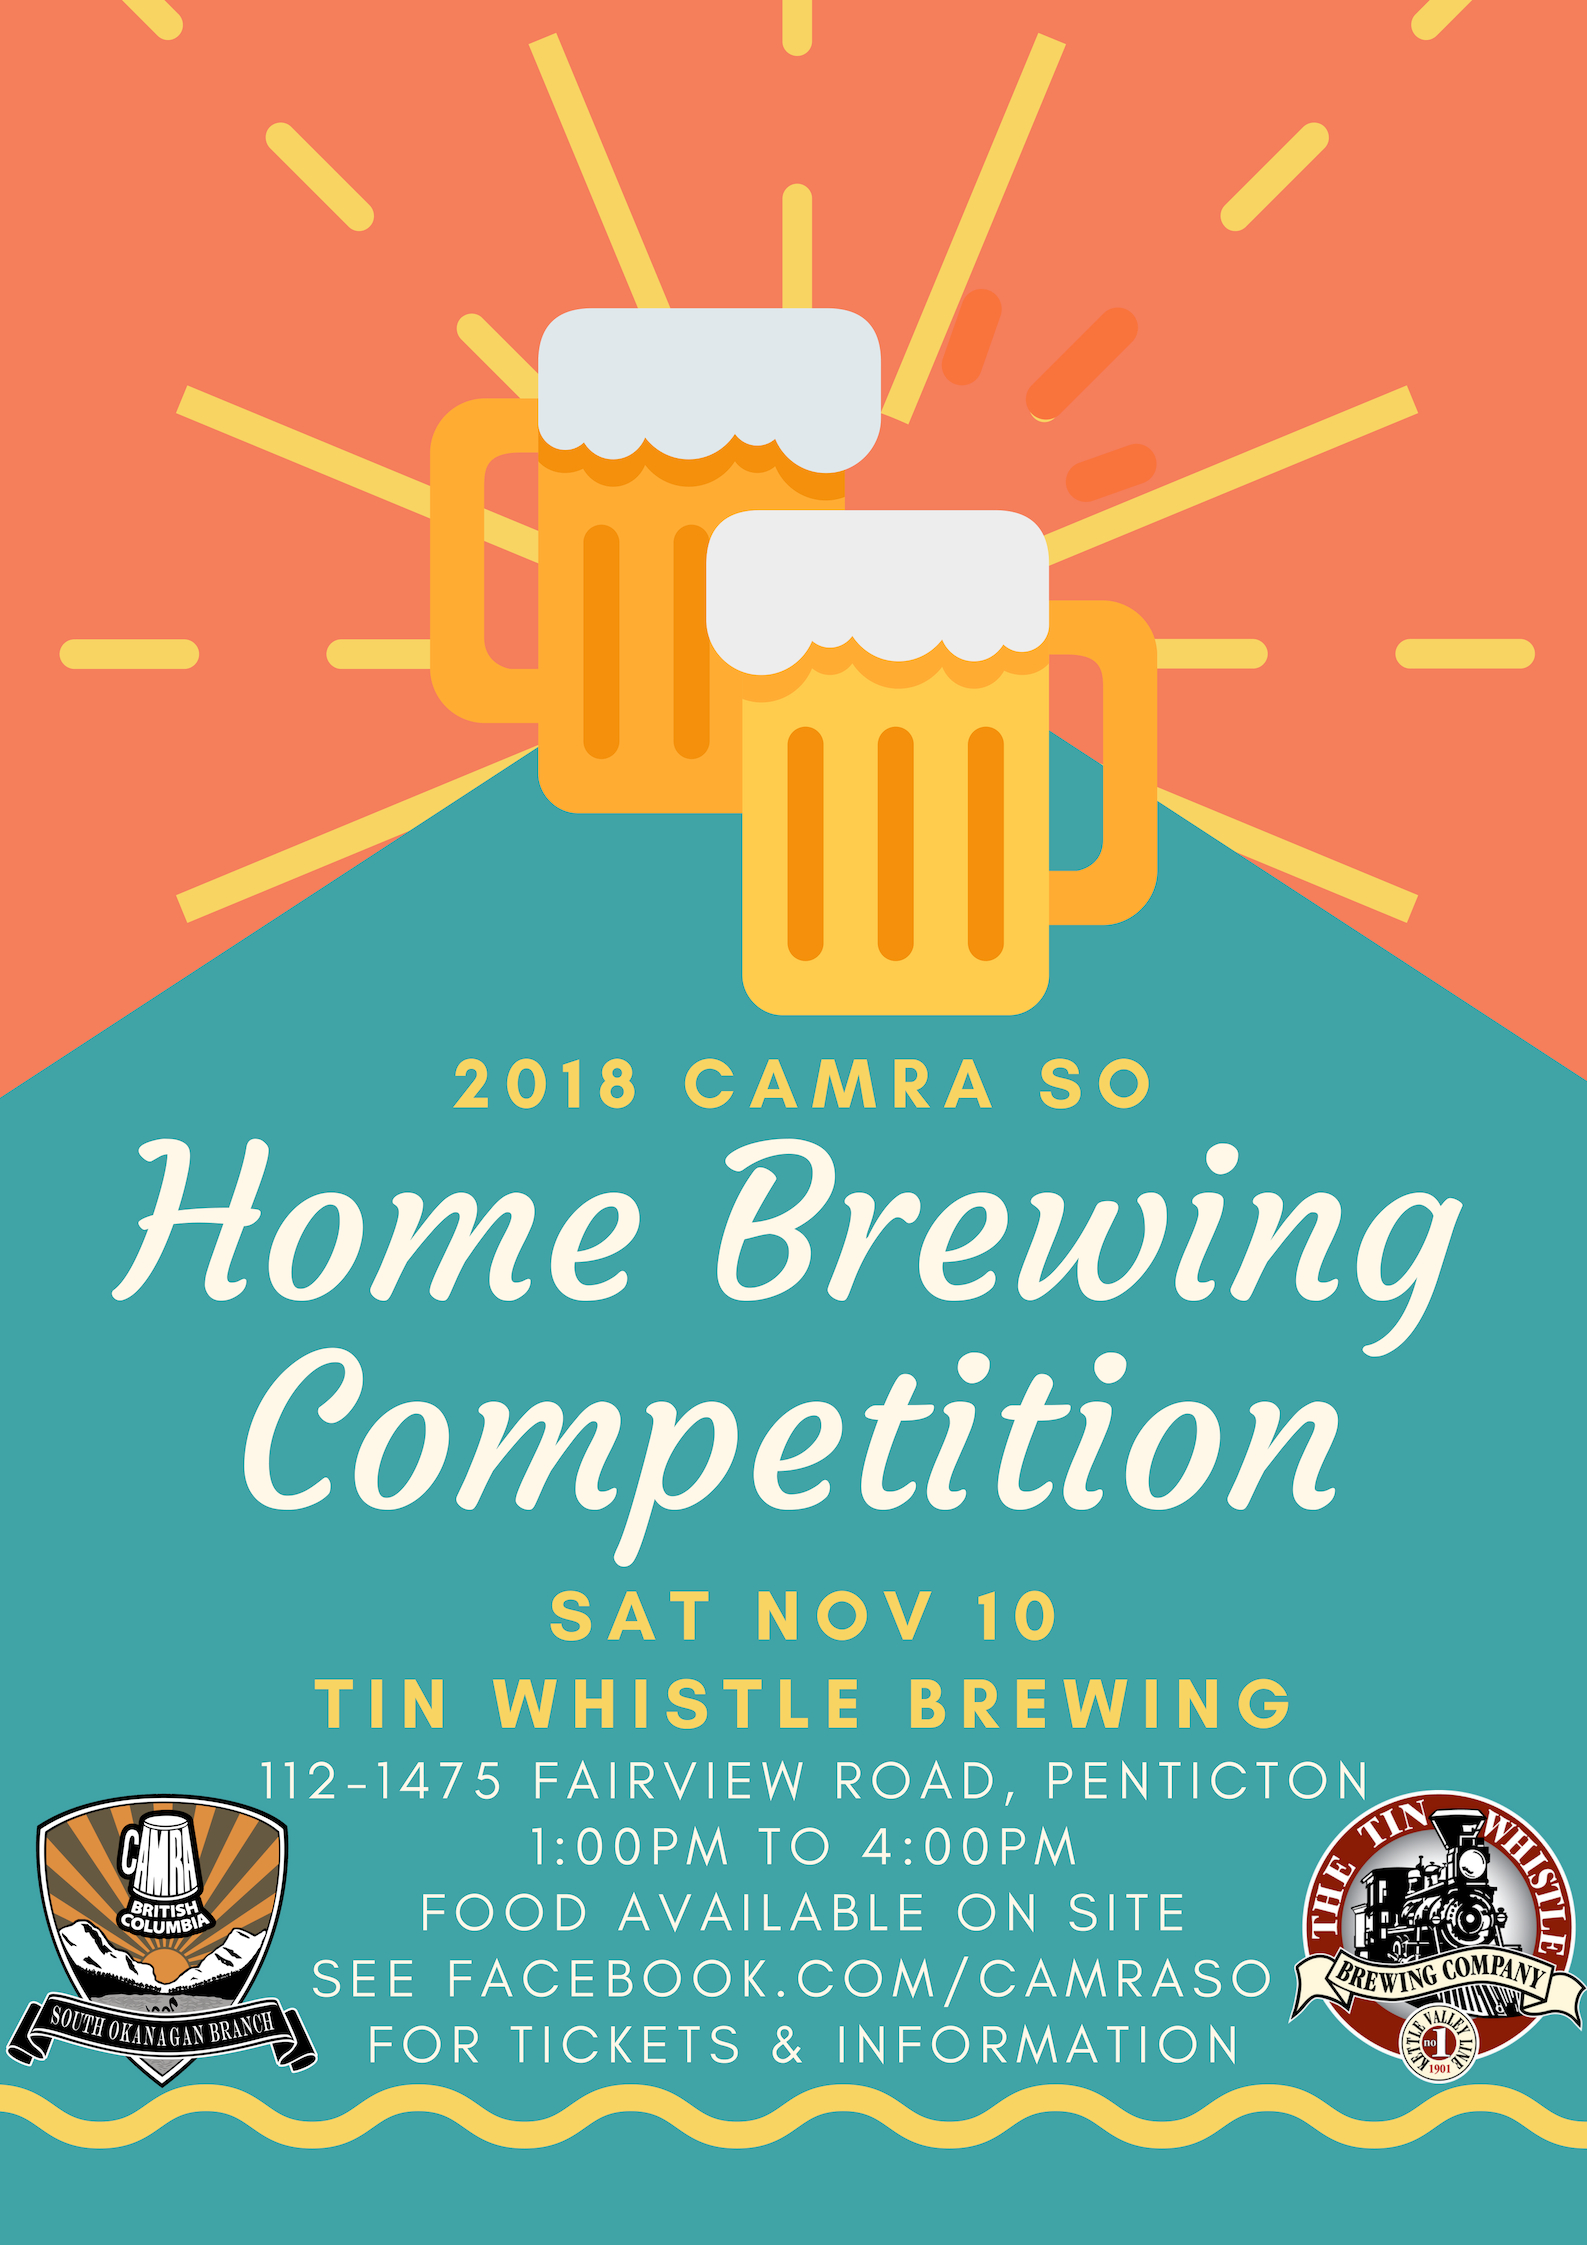 CAMRA SO 2018 Home Brewing Competition